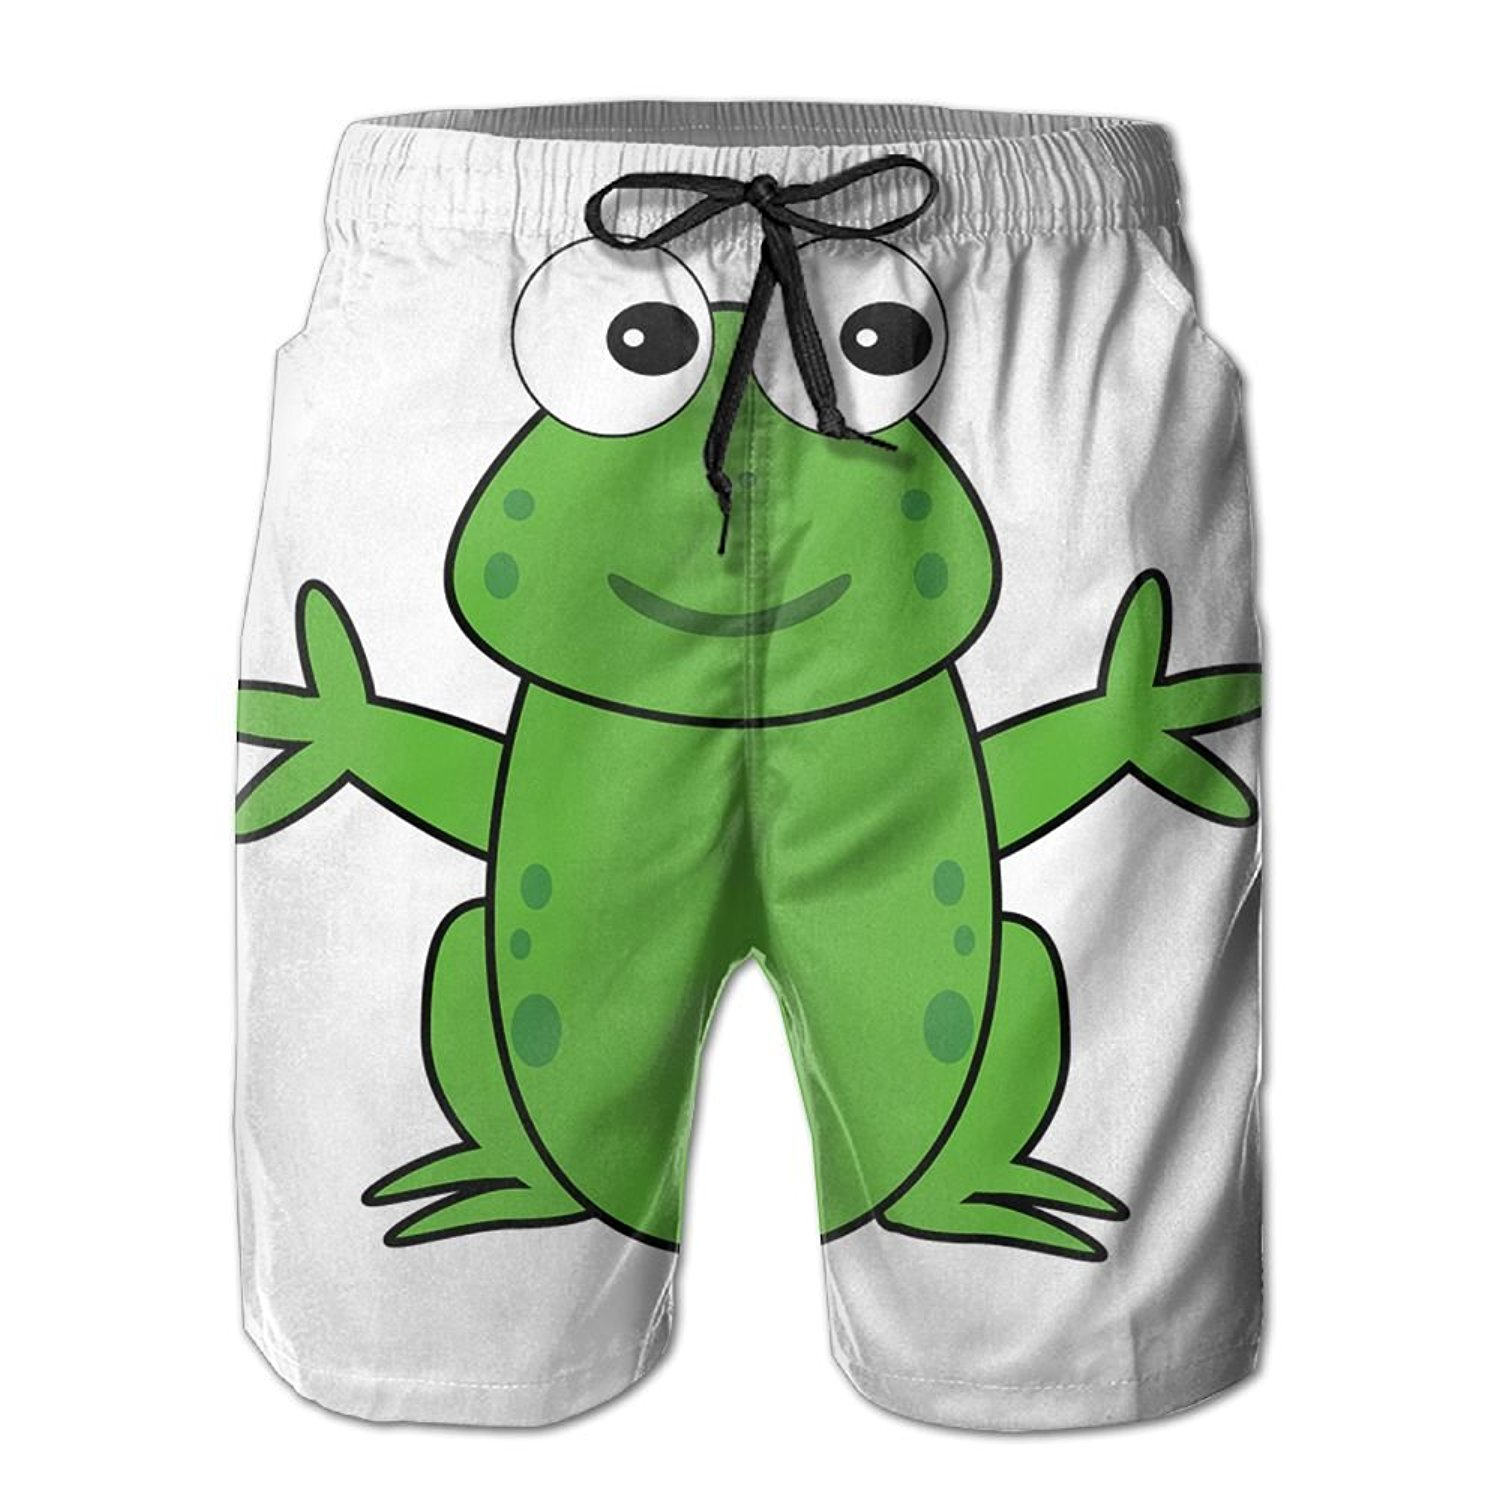 Frog Cute Mens Classic Summer Shorts Casual Swim Shorts with Pockets